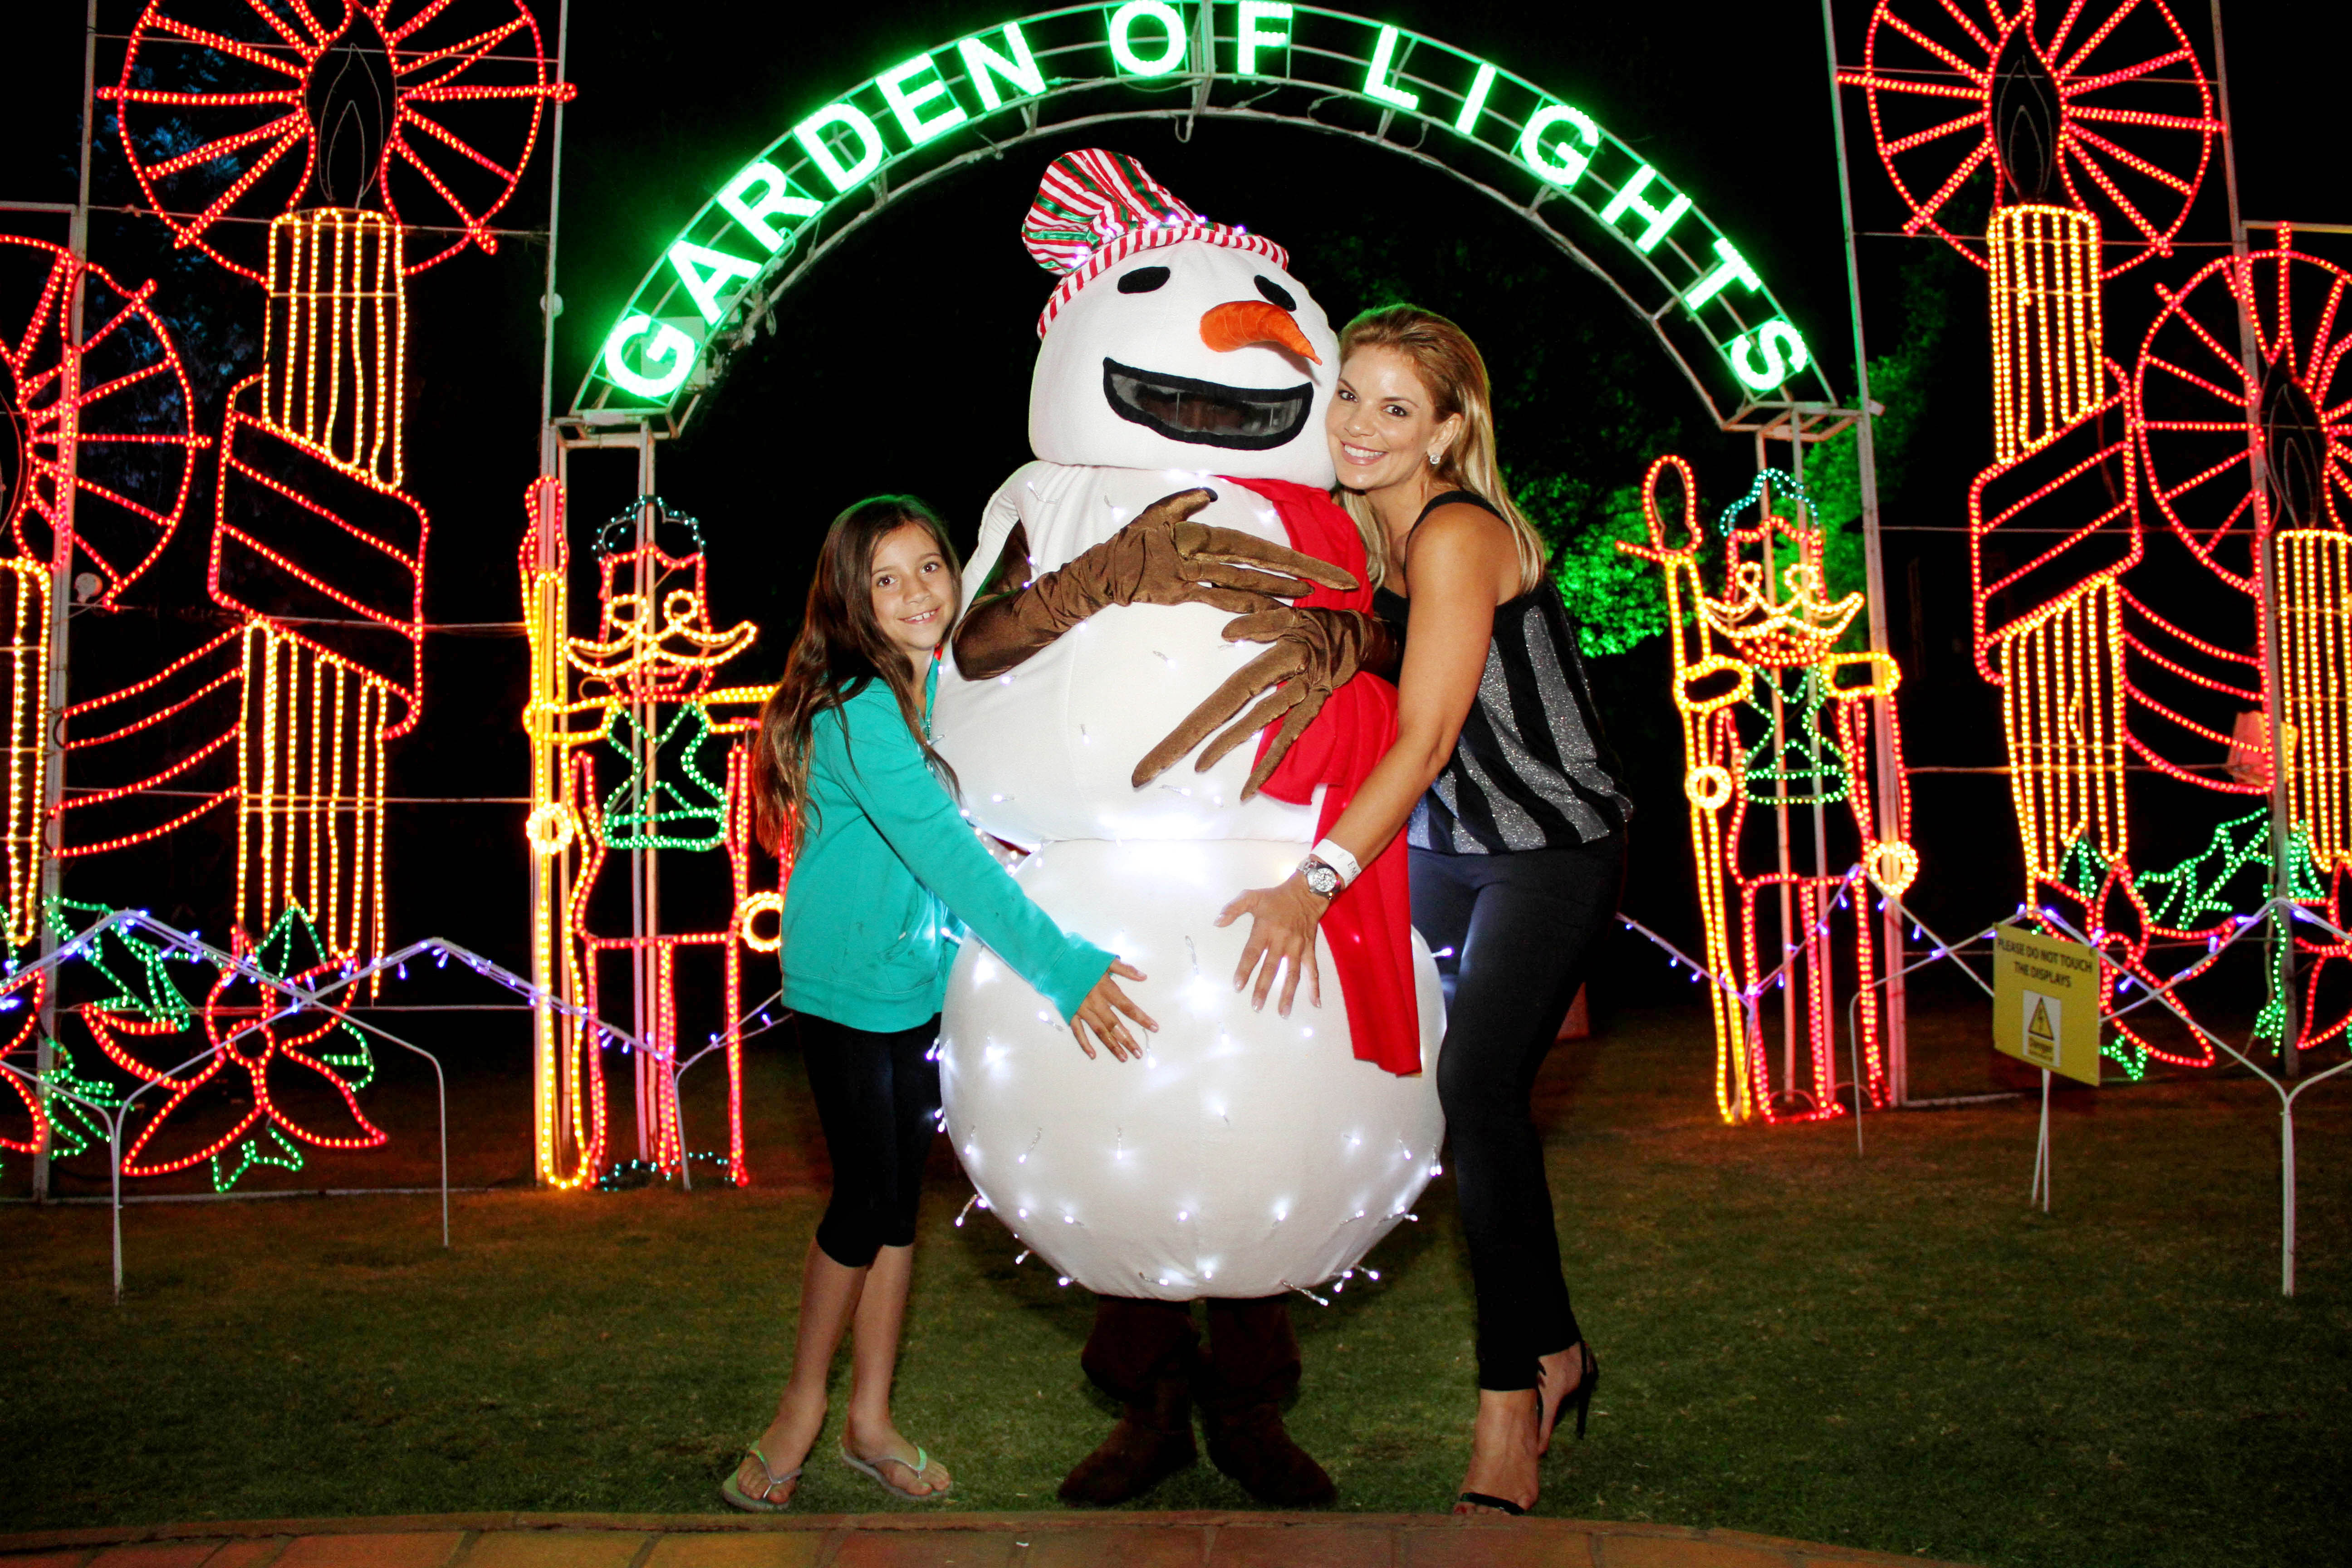 emperors garden of lights times